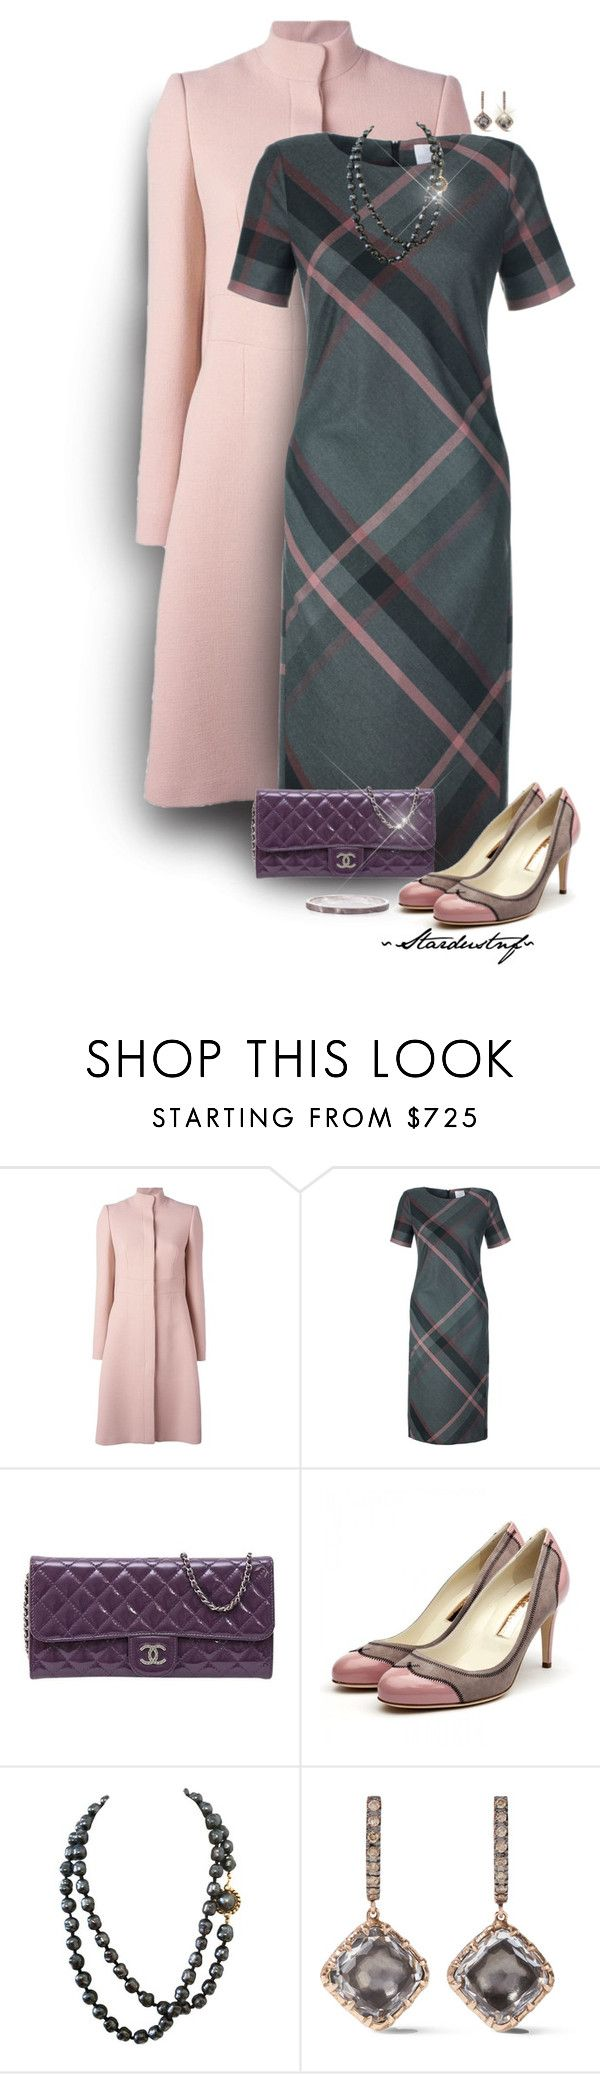 """Plaid Dress - Wherever You Go (Outfit Only)"" by stardustnf ❤ liked on Polyvore featuring Trilogy, Alexander McQueen, Chanel, Rupert Sanderson, Larkspur & Hawk, Alexa K, AlexanderMcQueen, plaid, clutchcrush and fearlesscrew"